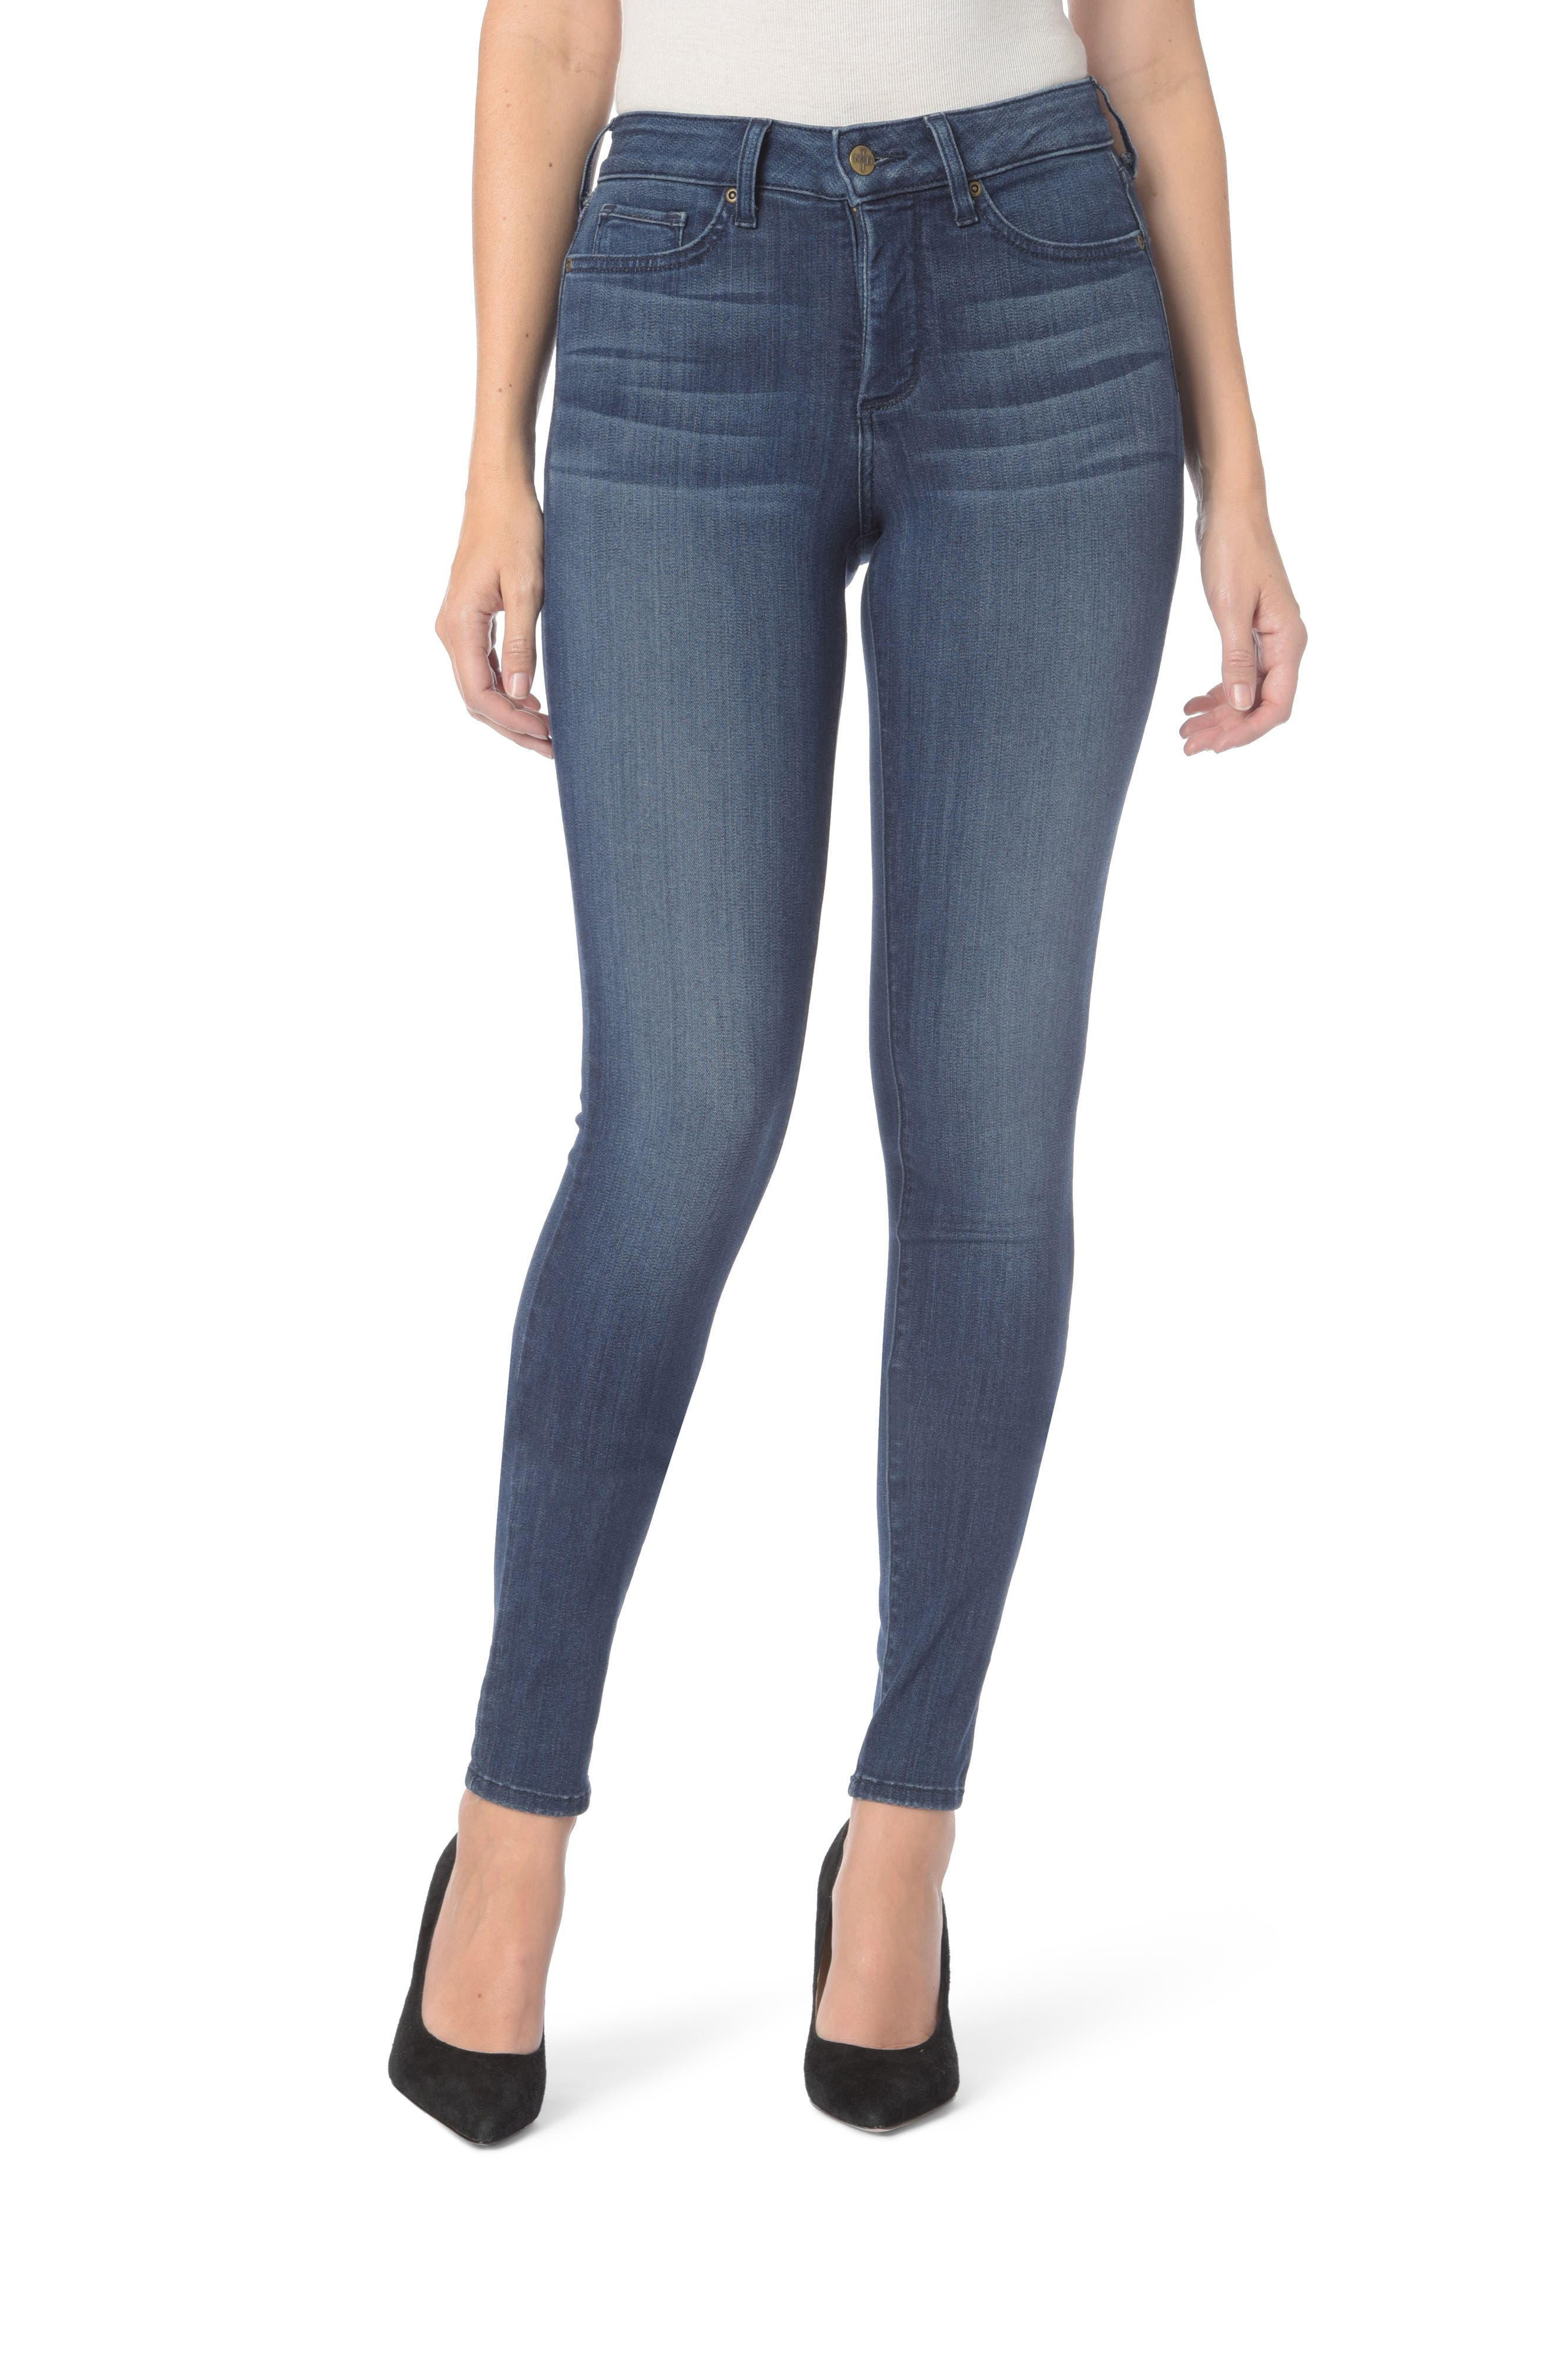 Ami Stretch Super Skinny Jeans,                             Main thumbnail 3, color,